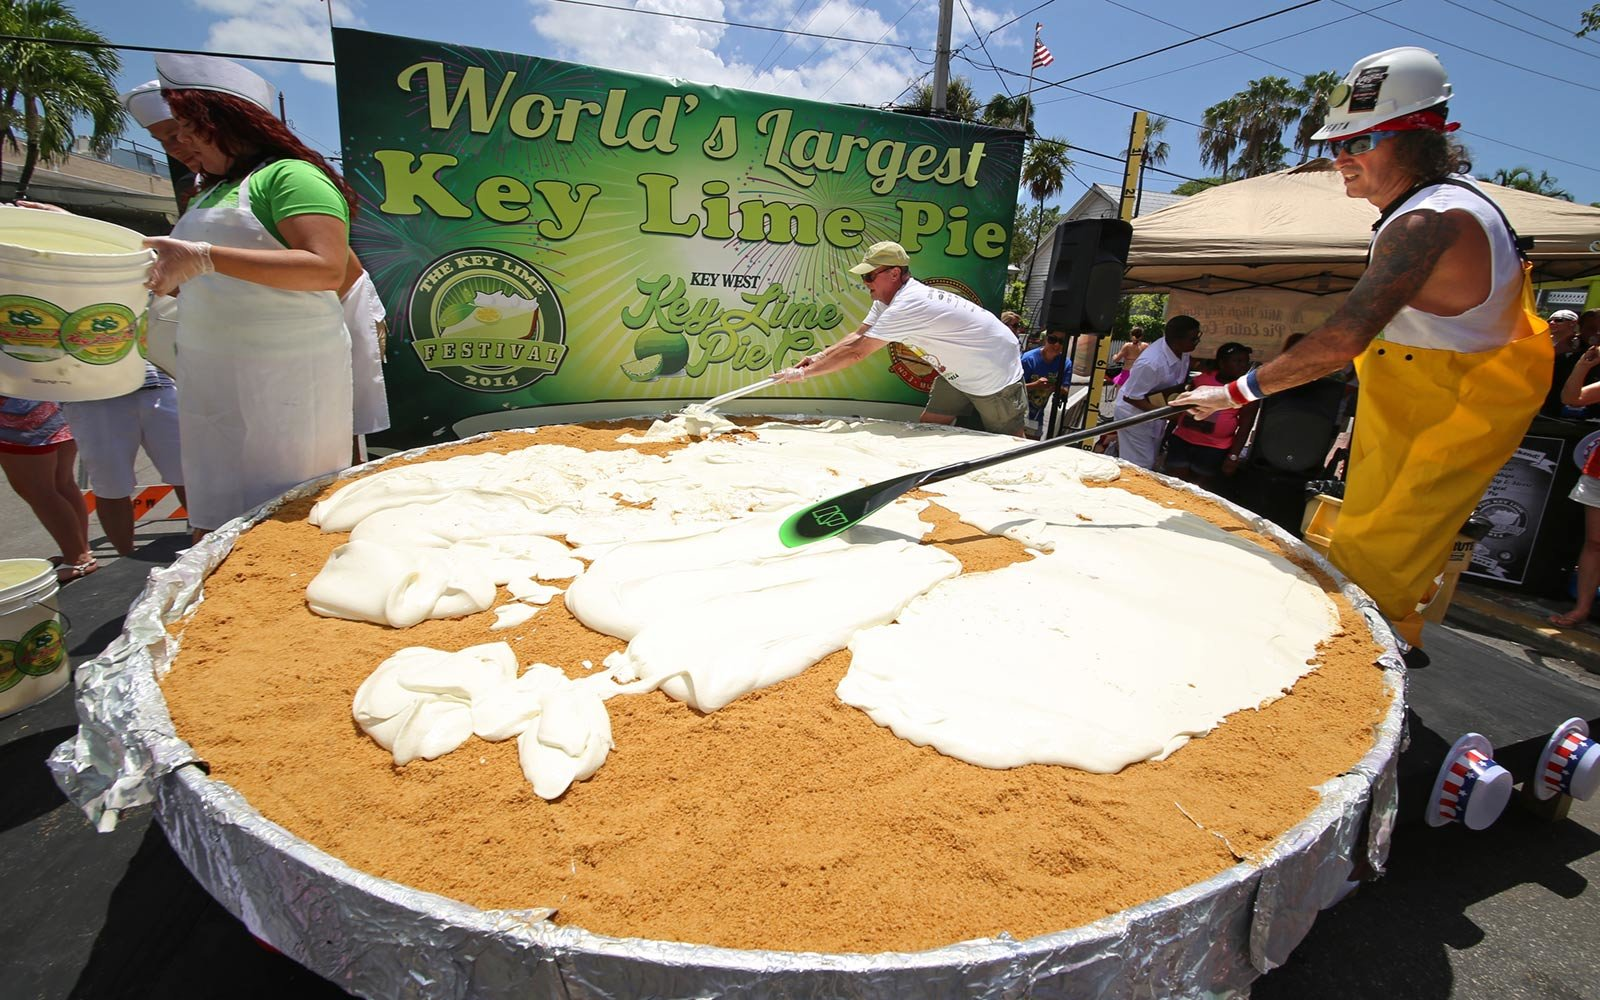 Key Lime Pie Festival, Fourth of July, Key West, Florida